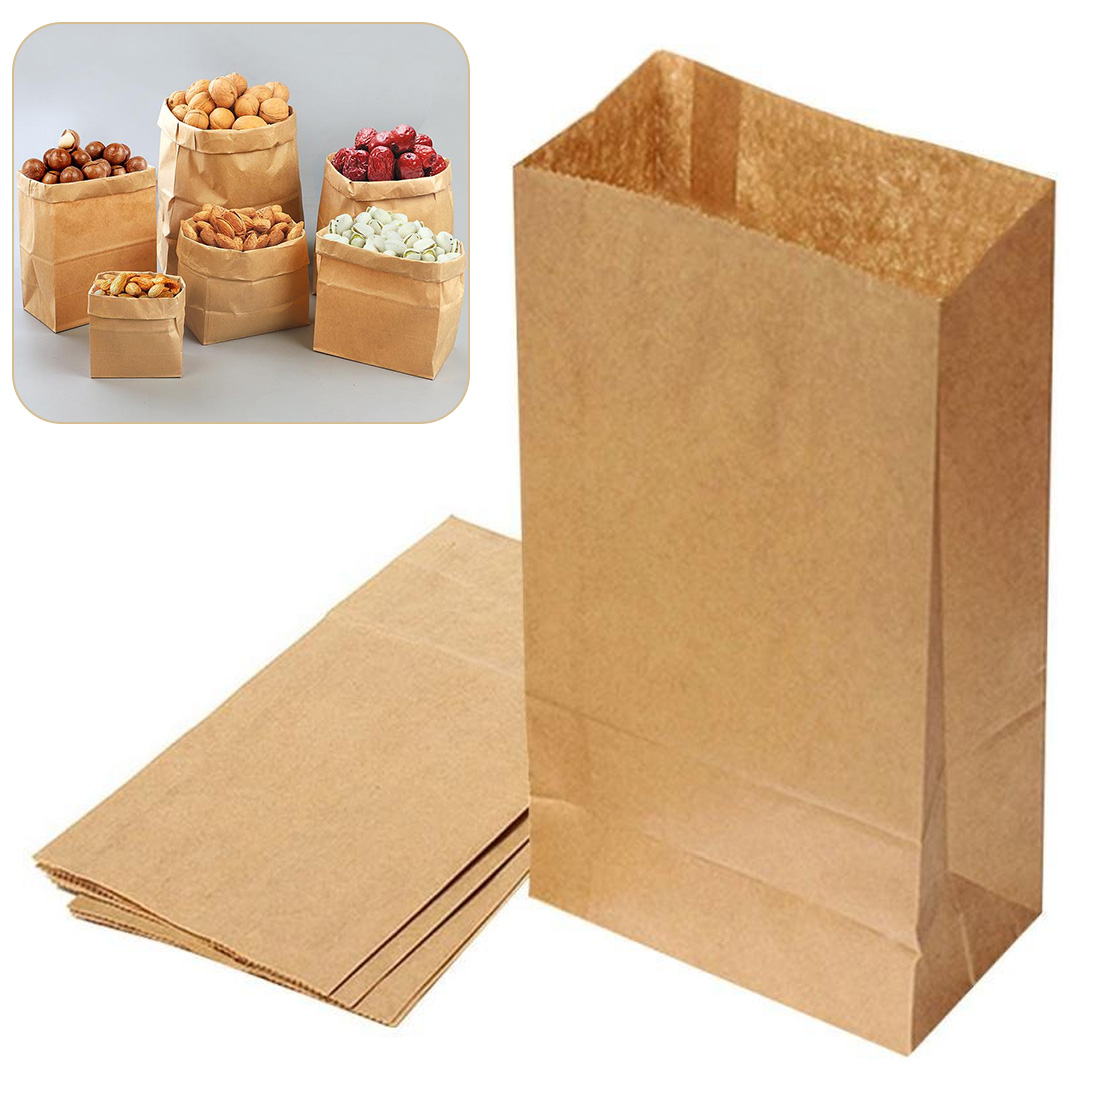 10pcs Brown Kraft Paper Gift Bags Wedding Candy Packaging Recyclable Jewelry Food Bread Shopping Party Bags For Boutique